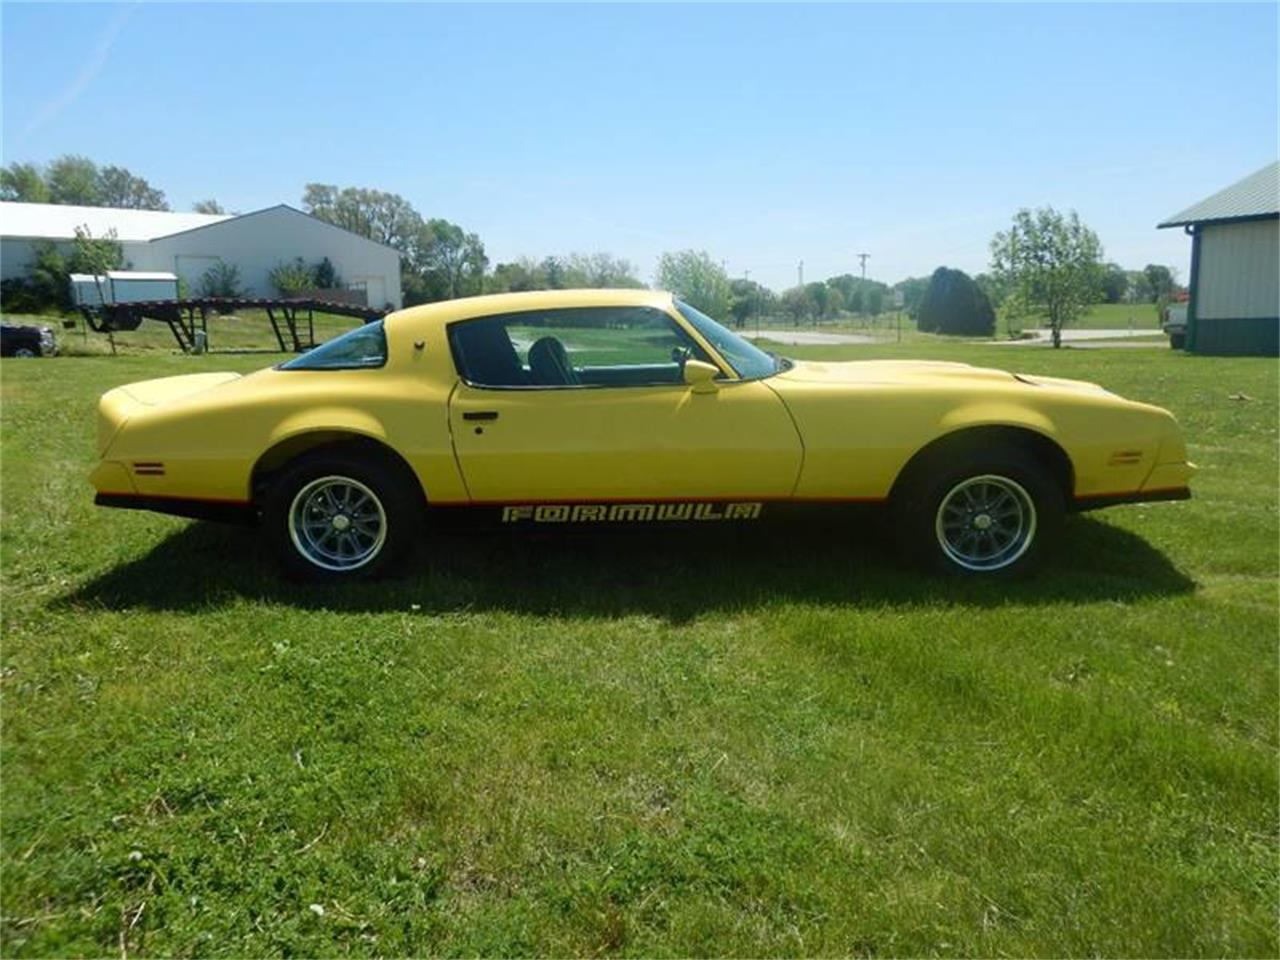 Large Picture of 1976 Pontiac Firebird located in Iowa Offered by Kinion Auto Sales & Service - Q6J2